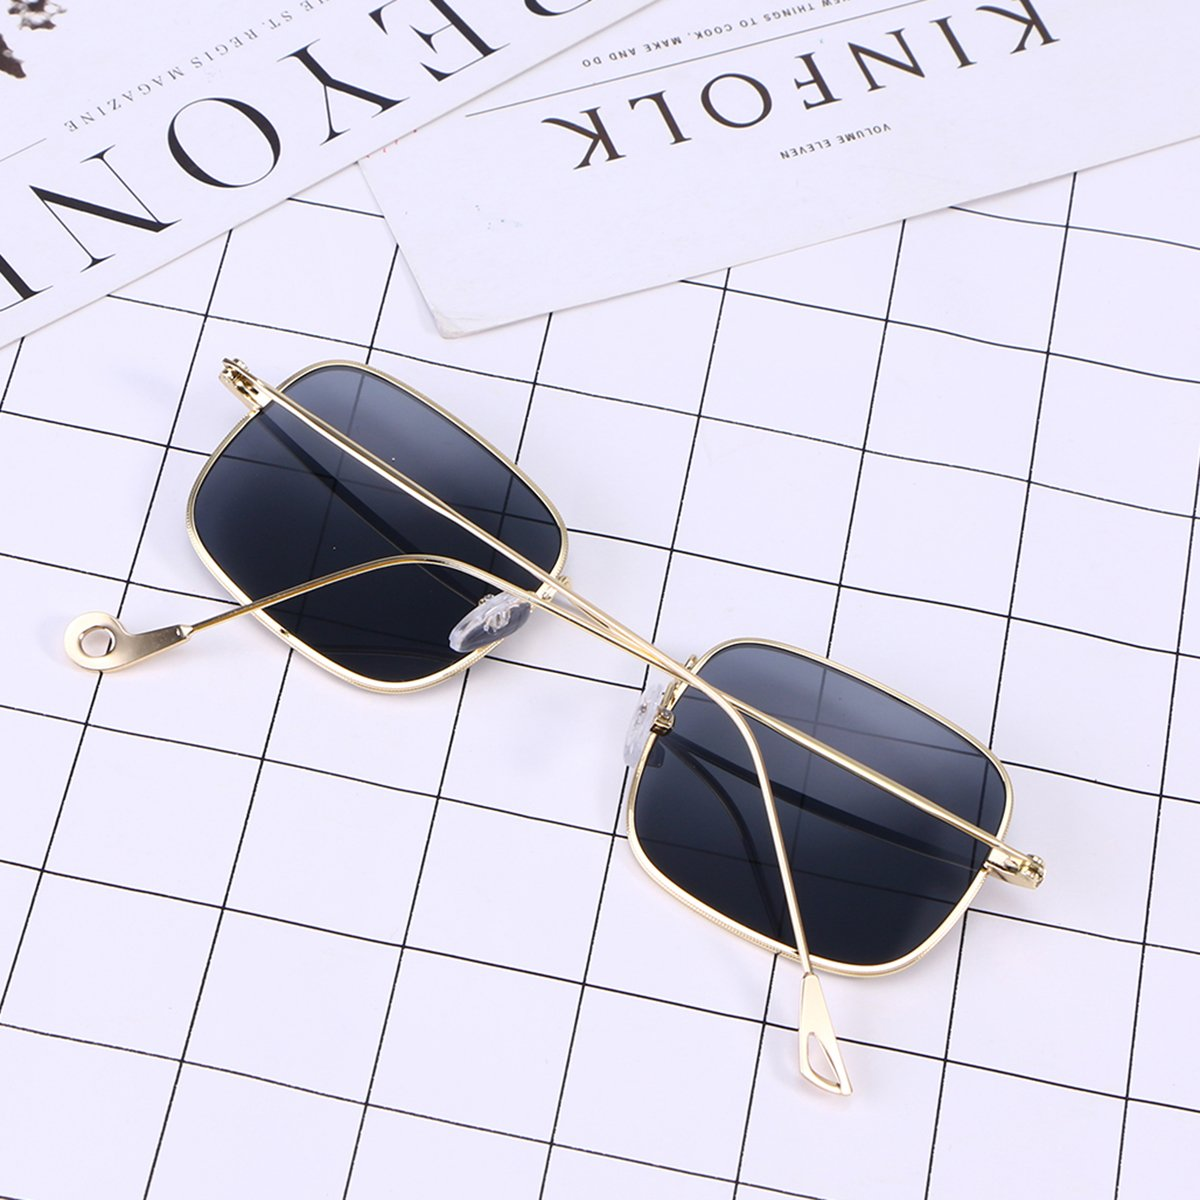 cdd479ff06c7 OULII Vintage Stylish Sunglasses Small Square Ocean Film Eyeglasses (Gold  Frame Gray Lens): Amazon.co.uk: Clothing